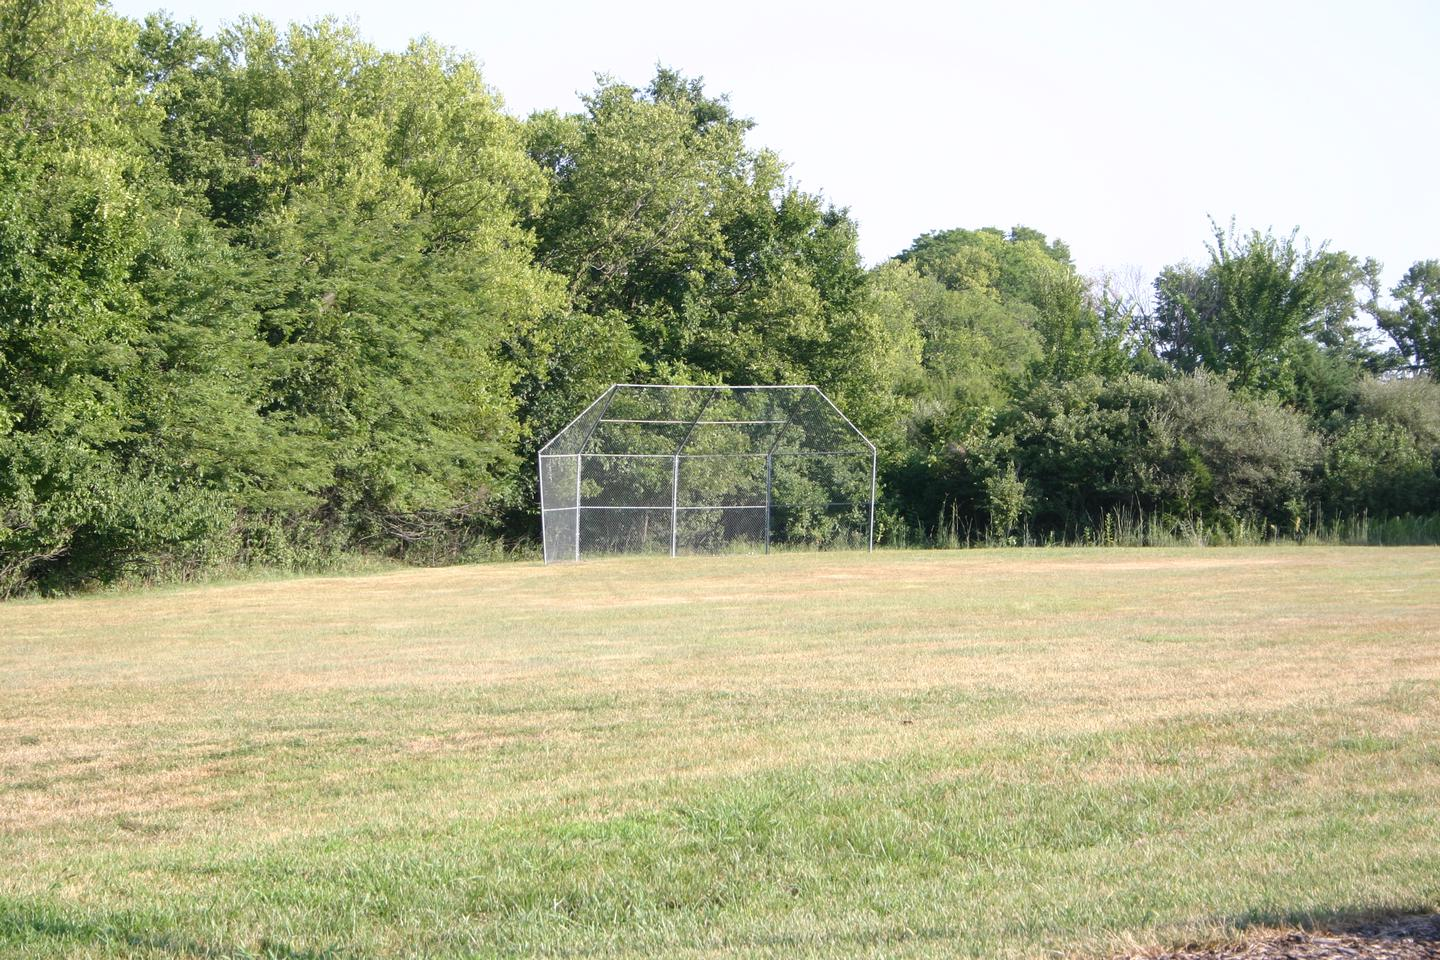 Bloomington West Park Campground softball fieldA softball field is located at the south end of the camping area